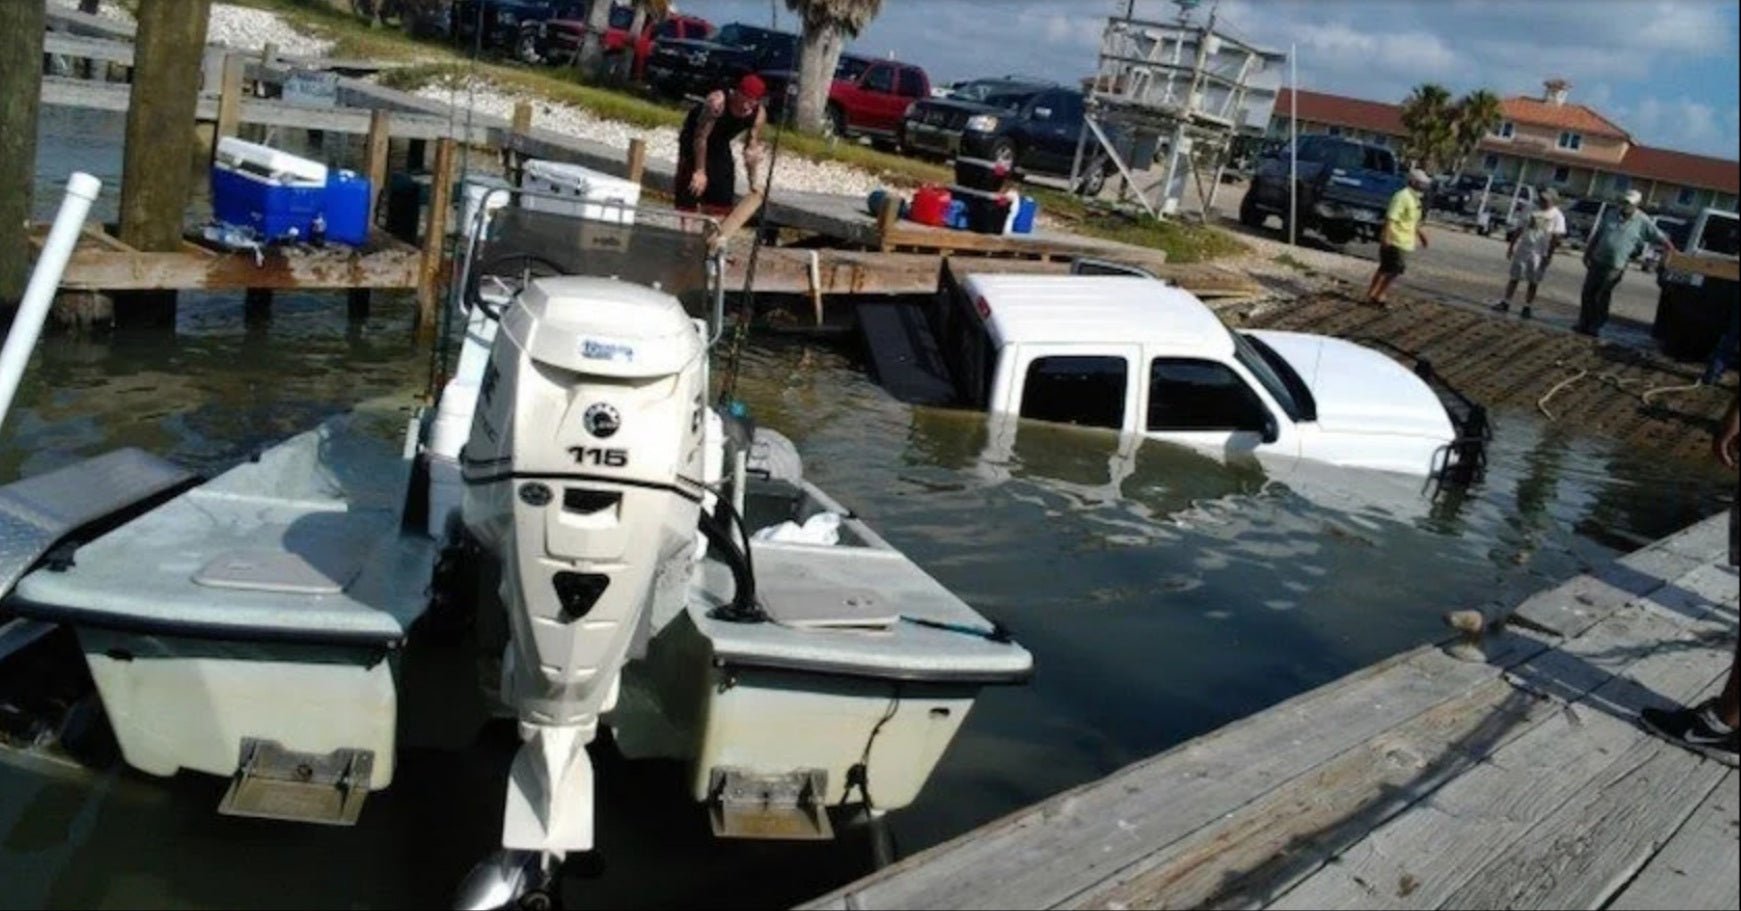 Boat Ramp Mistakes: What NOT To Do At Public Boat Ramps